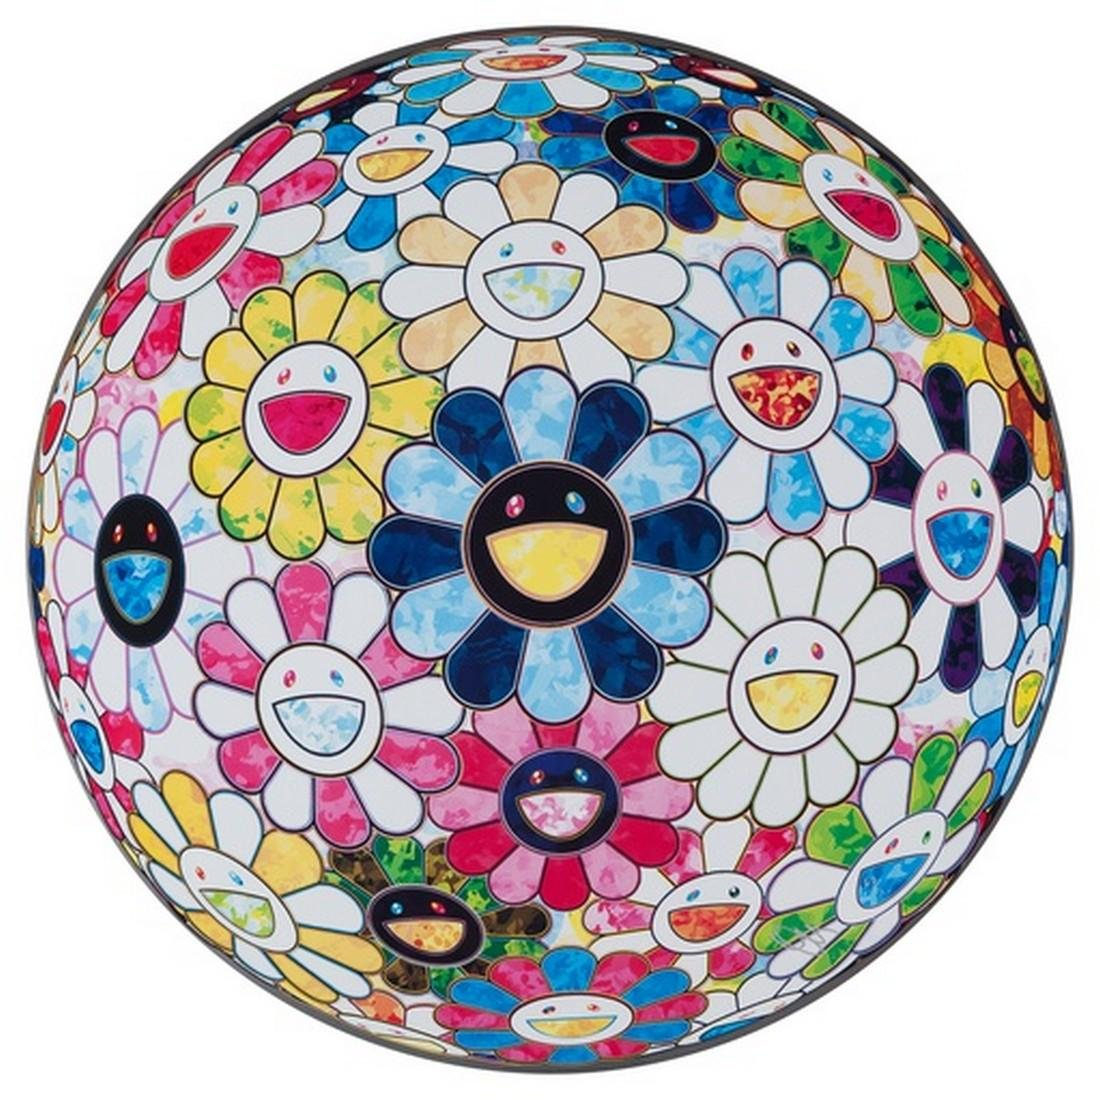 The Flowerball's Painterly Challenge - Takashi Murakami